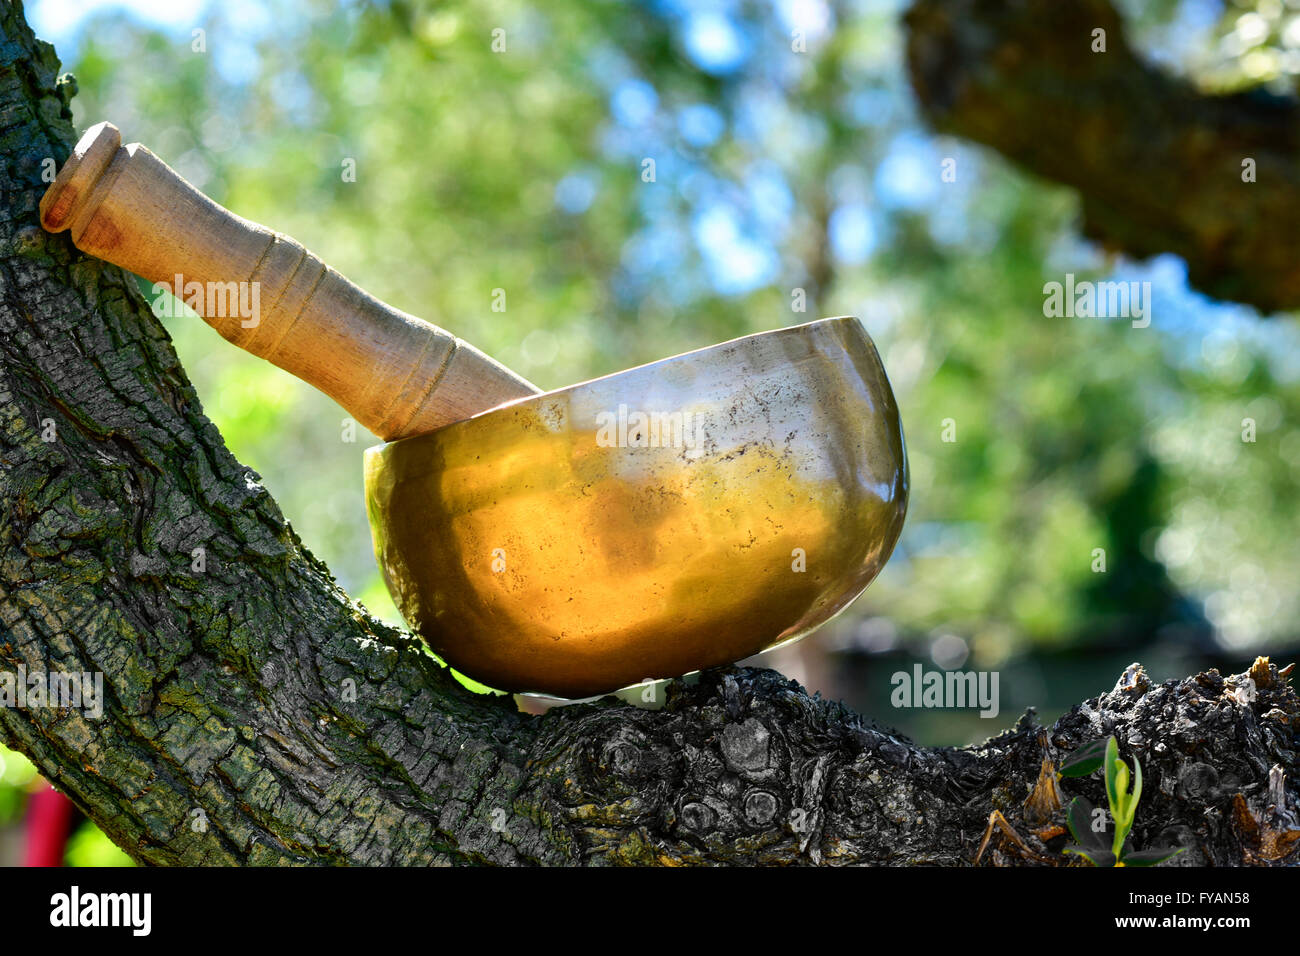 a tibetan singing bowl with its wooden mallet placed on the branch of a tree in a rural scene Stock Photo